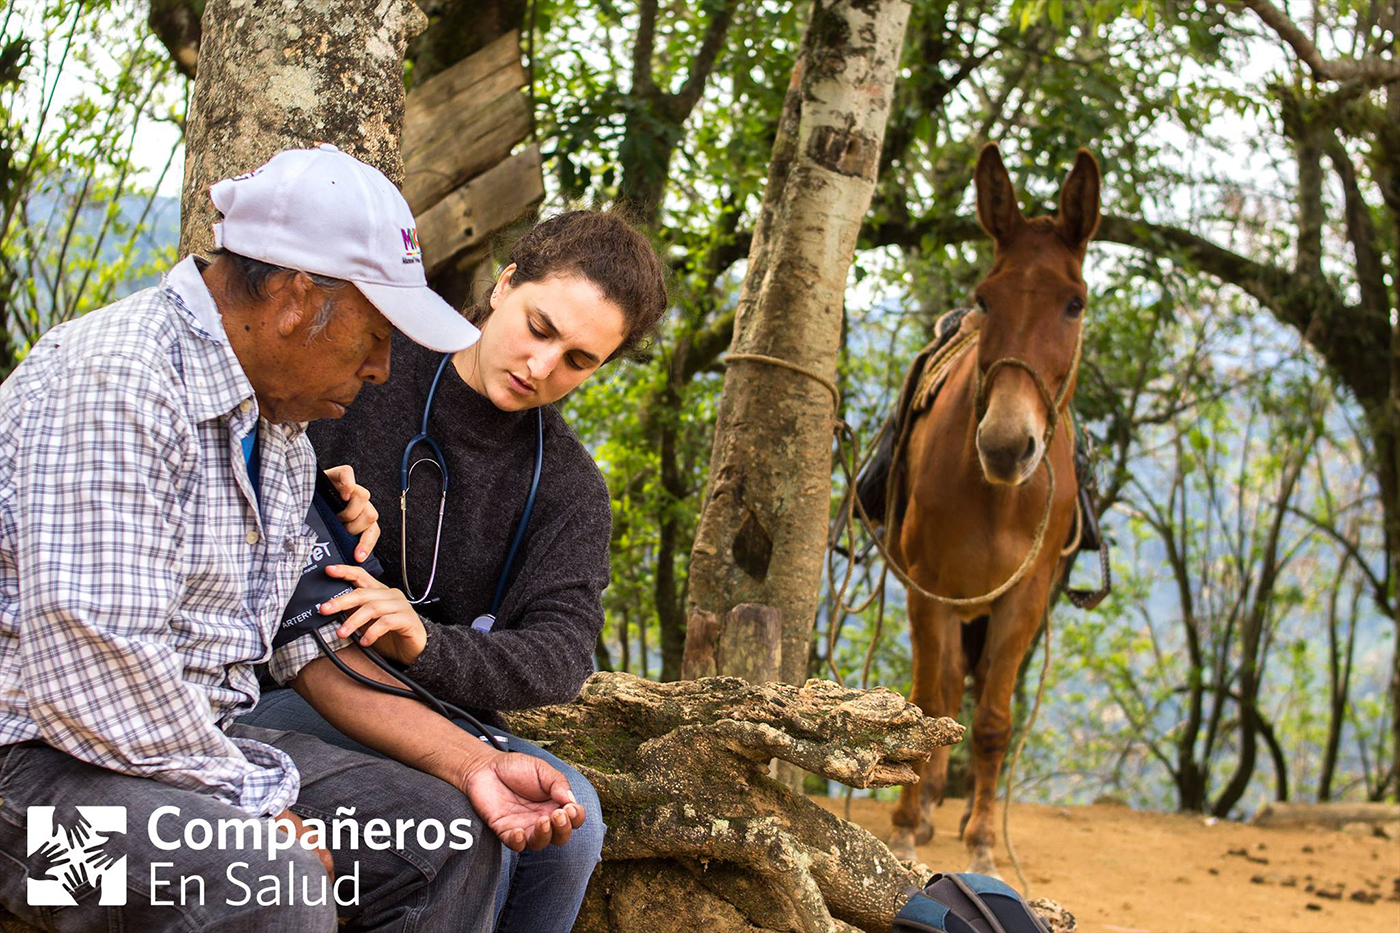 In 2018, more than 60 volunteers supported Compañeros En Salud in areas ranging from research to logistics to mentorship and training for our clinicians and  Acompañantes  (community health workers). Our work would not be possible without the contribution of their time and talents. From all of us here: thank you for your accompaniment.   Photo: Joanna Krupp (right), who volunteered as our MEQ (monitoring, evaluation and quality) facilitator, takes a blood pressure reading from Don Fidel during a  búsqueda activa  (active case finding campaign) health screening.